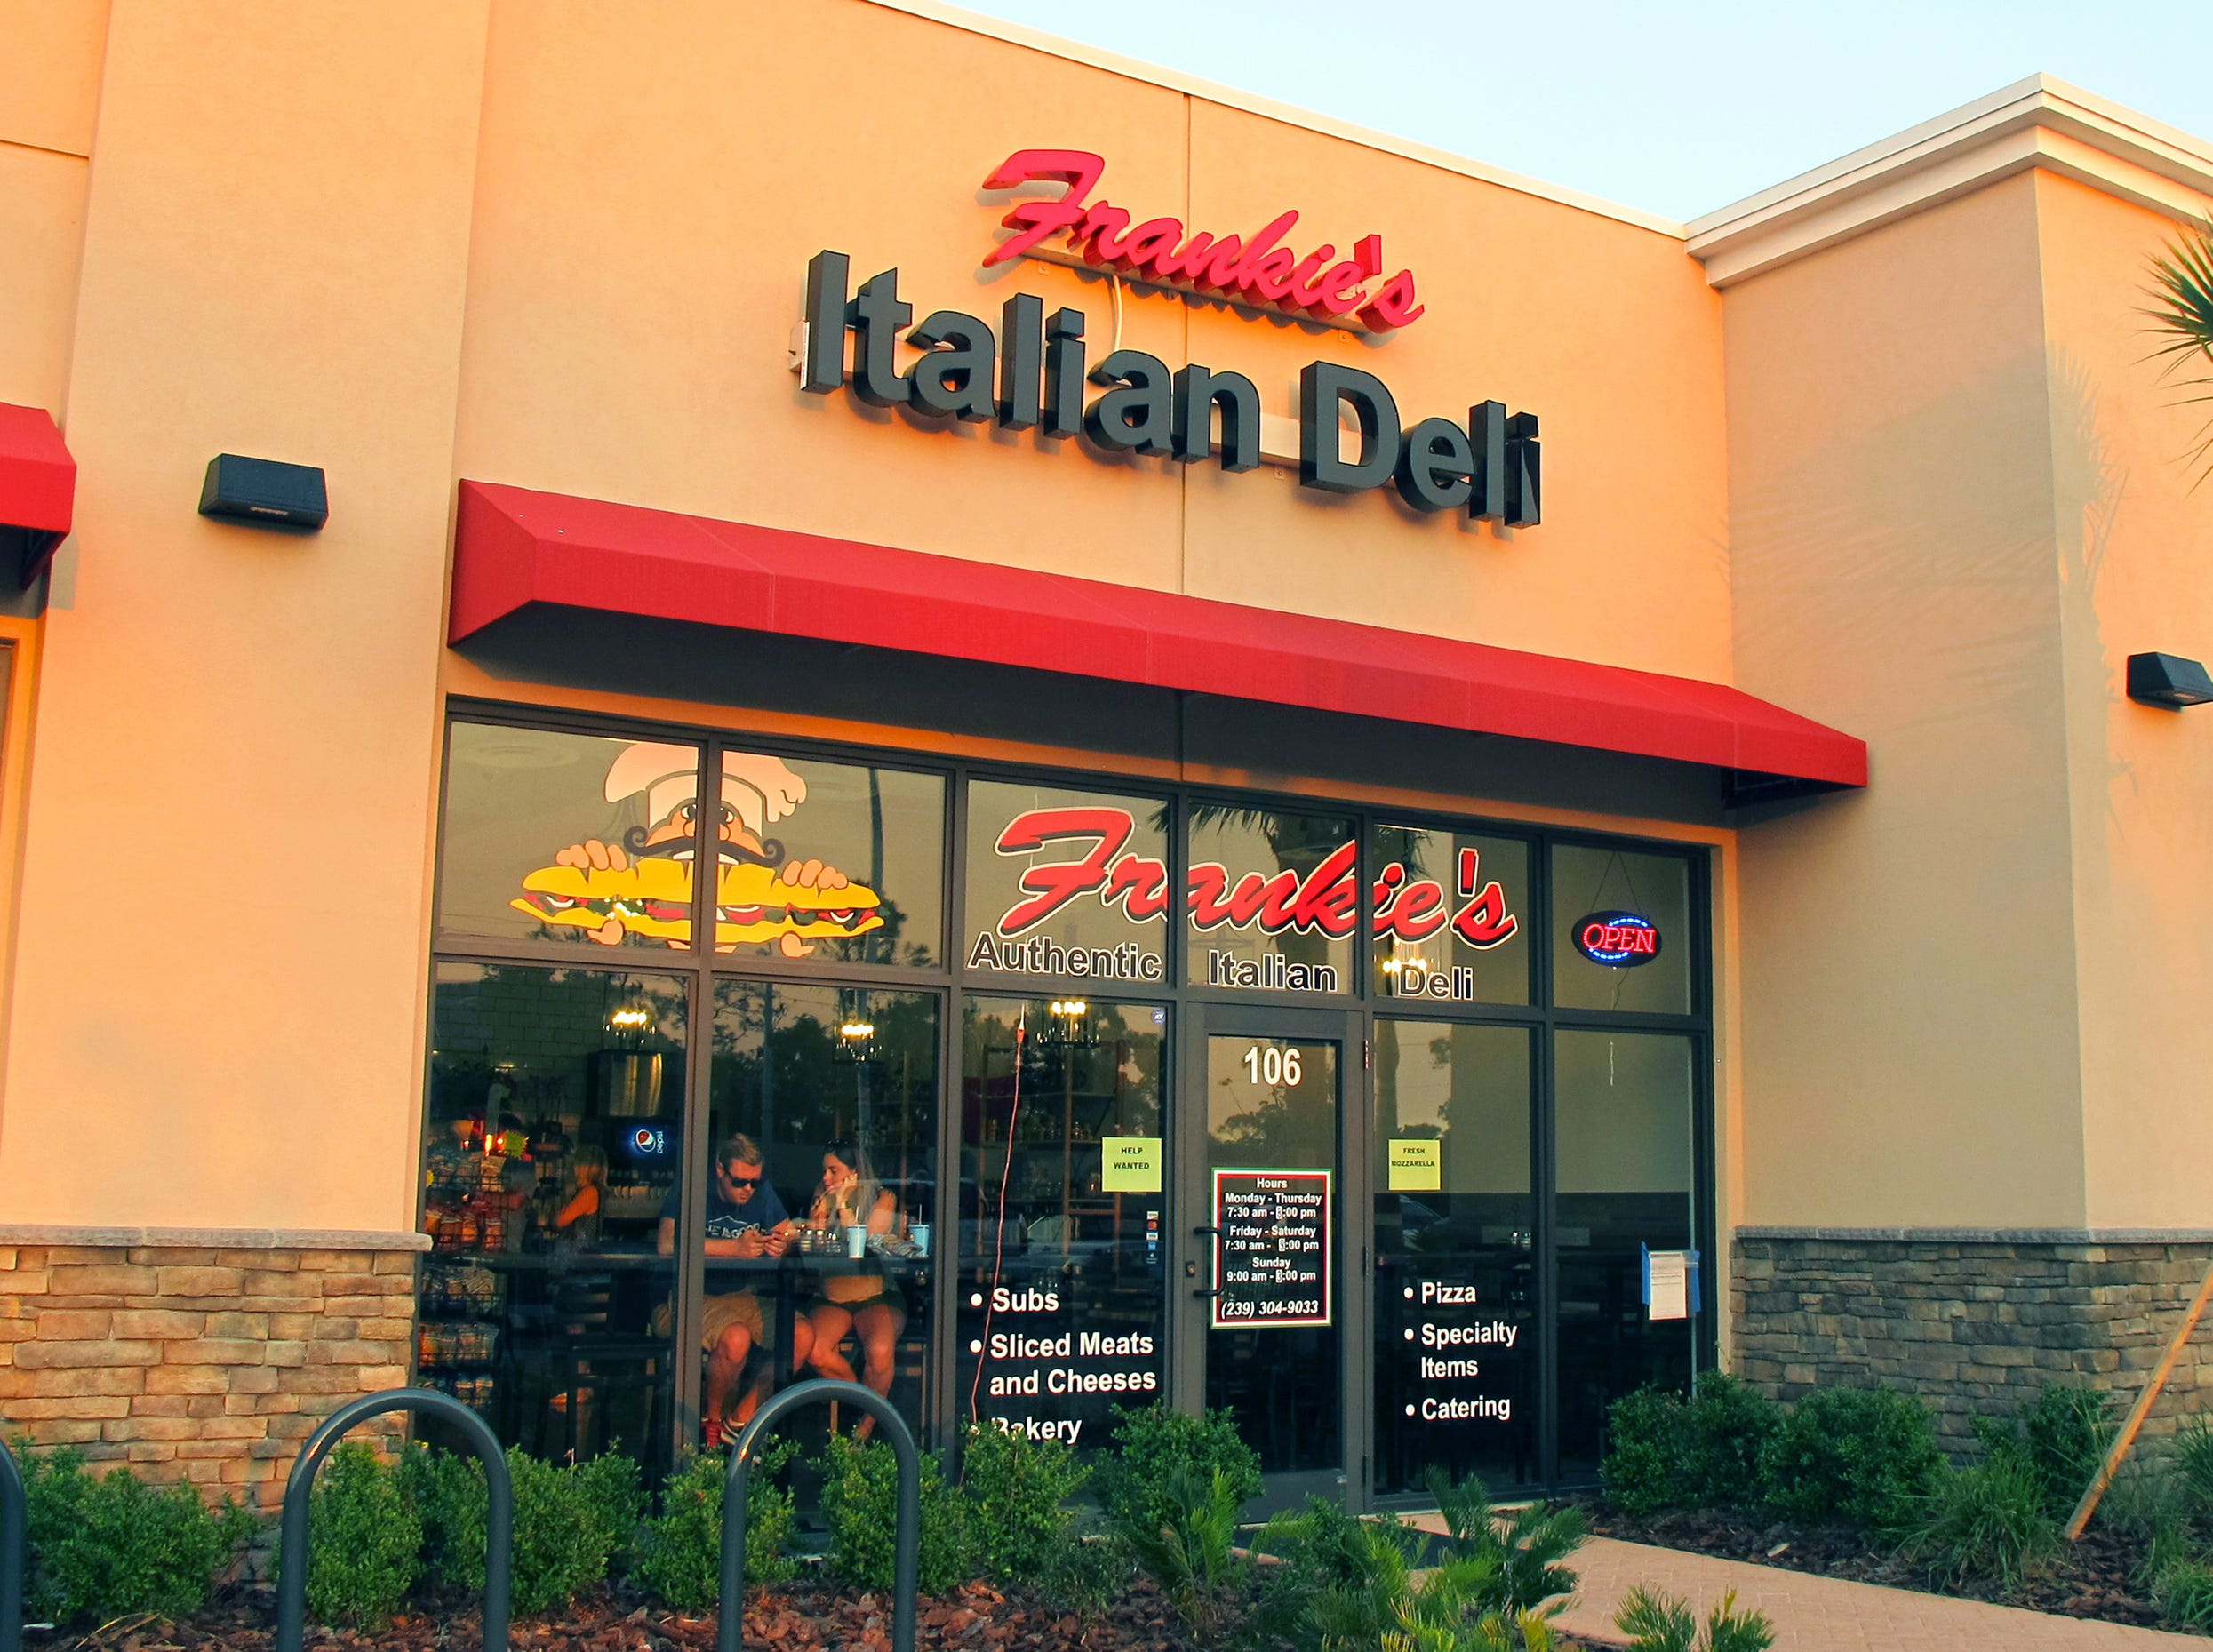 Frankie's Italian Deli launched in April 2018 at 6654 Collier Blvd., near the Walmart Supercenter south of U.S. 41 East in East Naples.